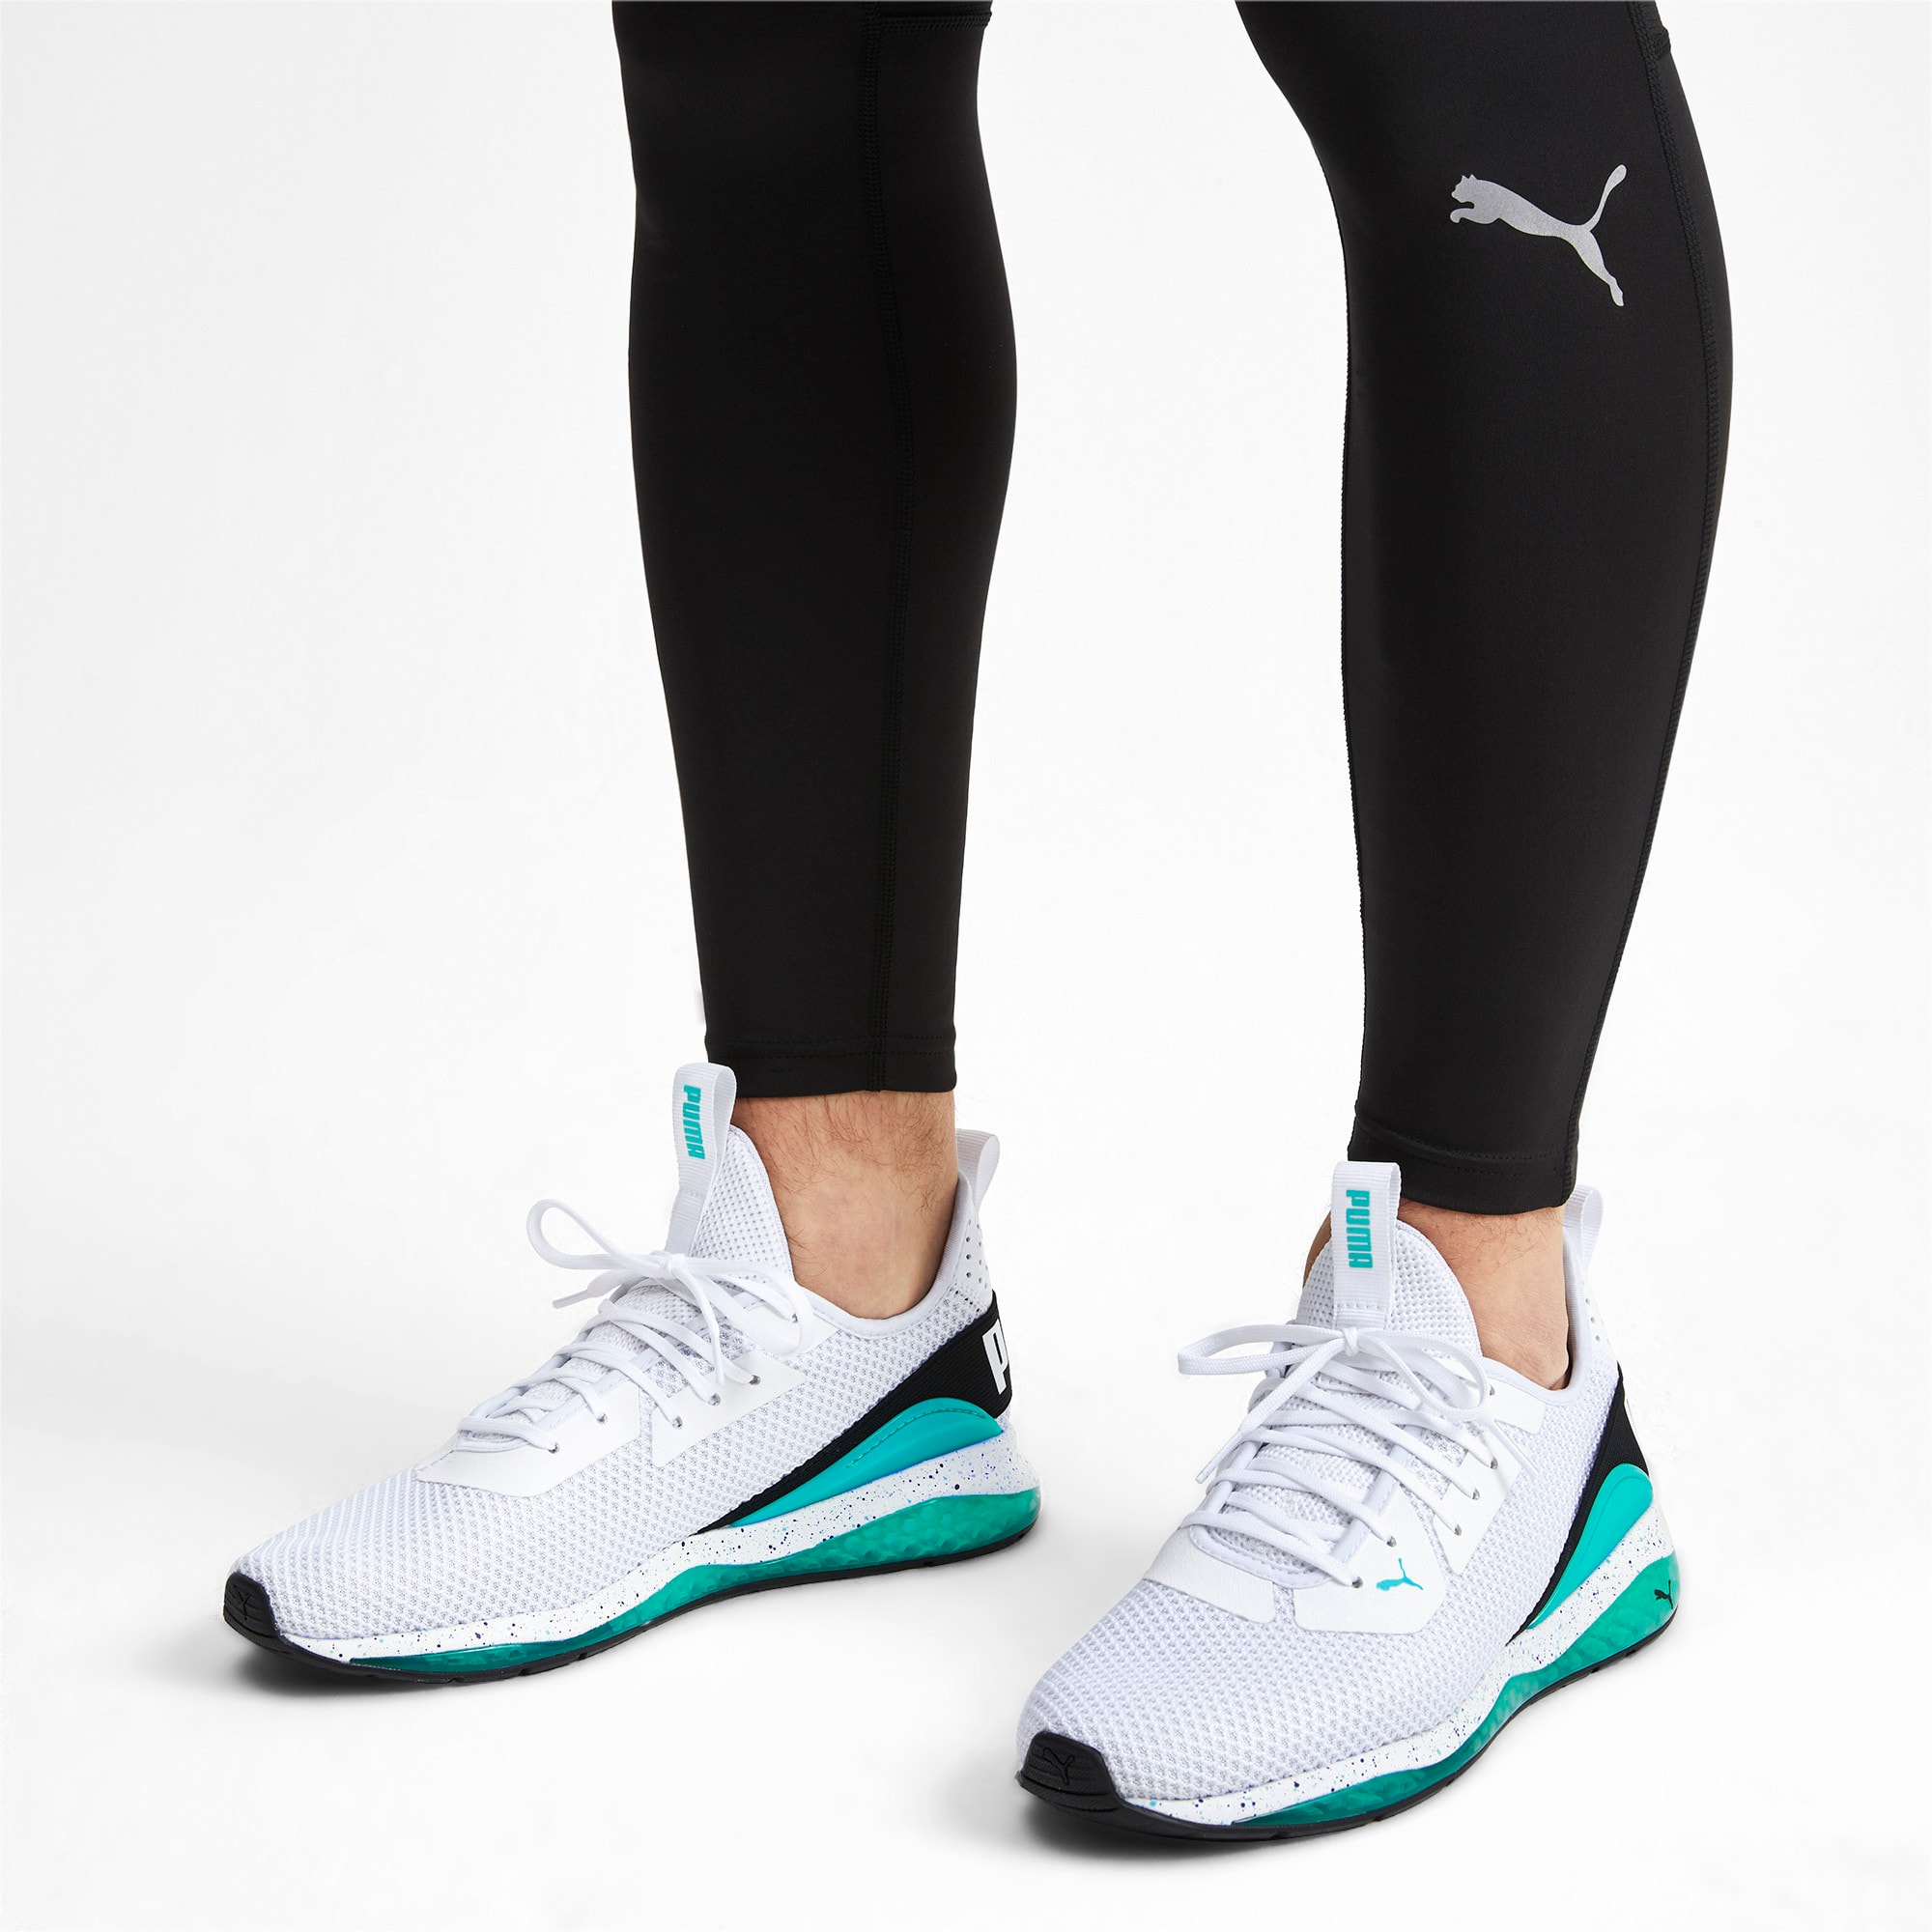 Thumbnail 4 of Cell Descend Weave Running Trainers, White-Black-Blue Turquoise, medium-IND